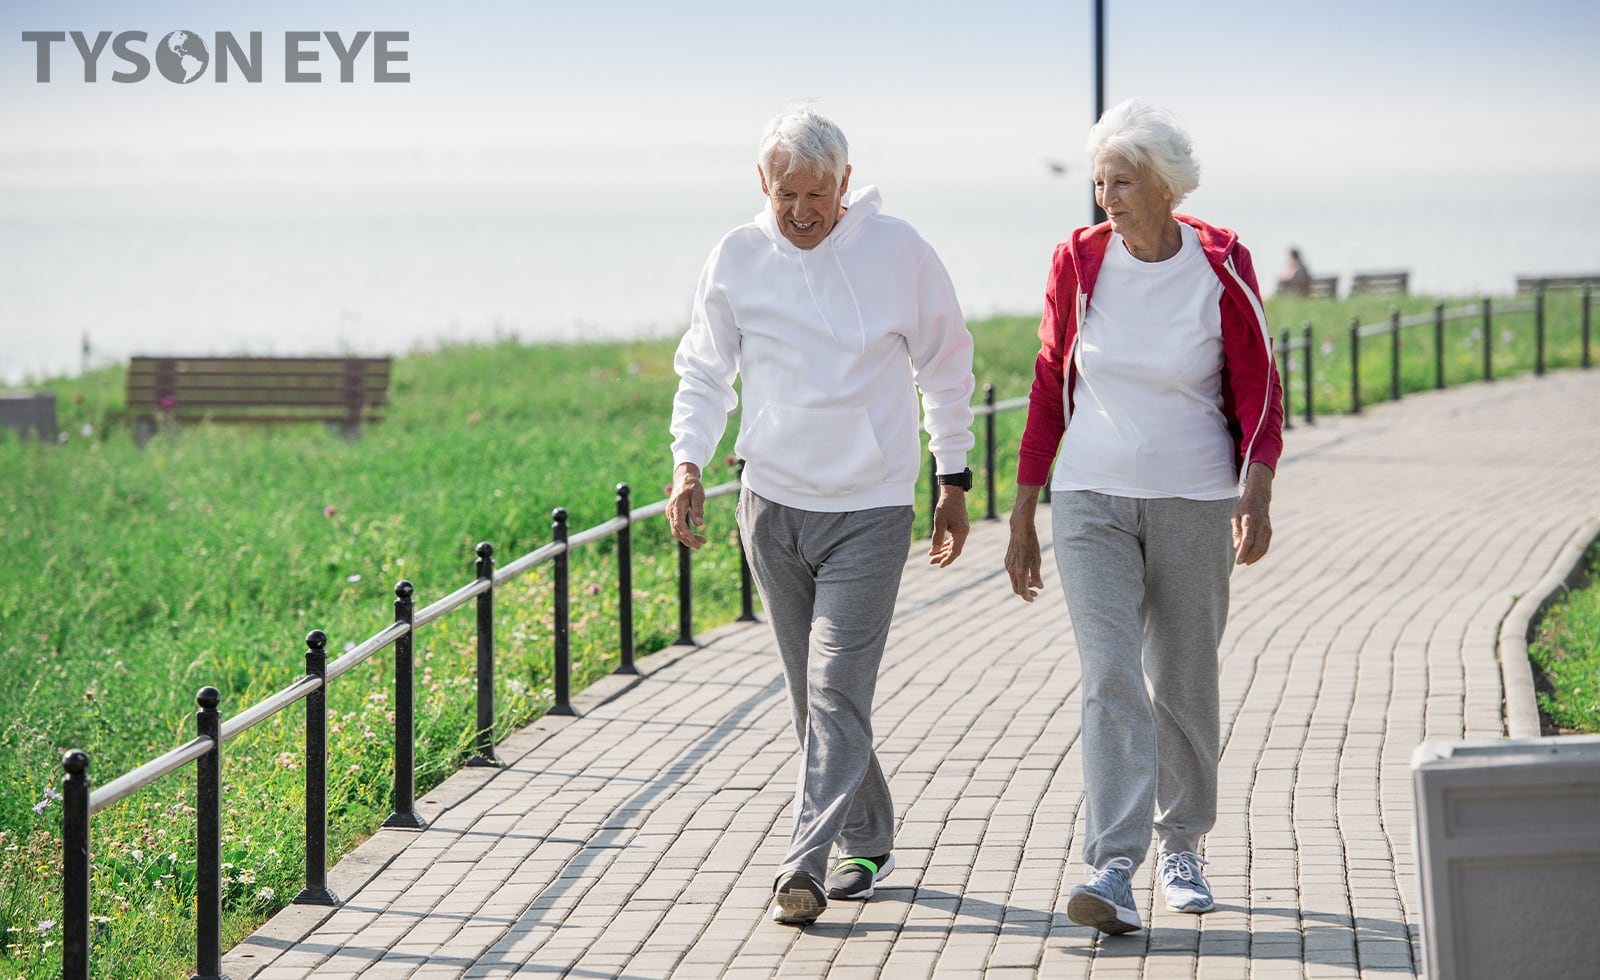 An active older couple walking outdoors